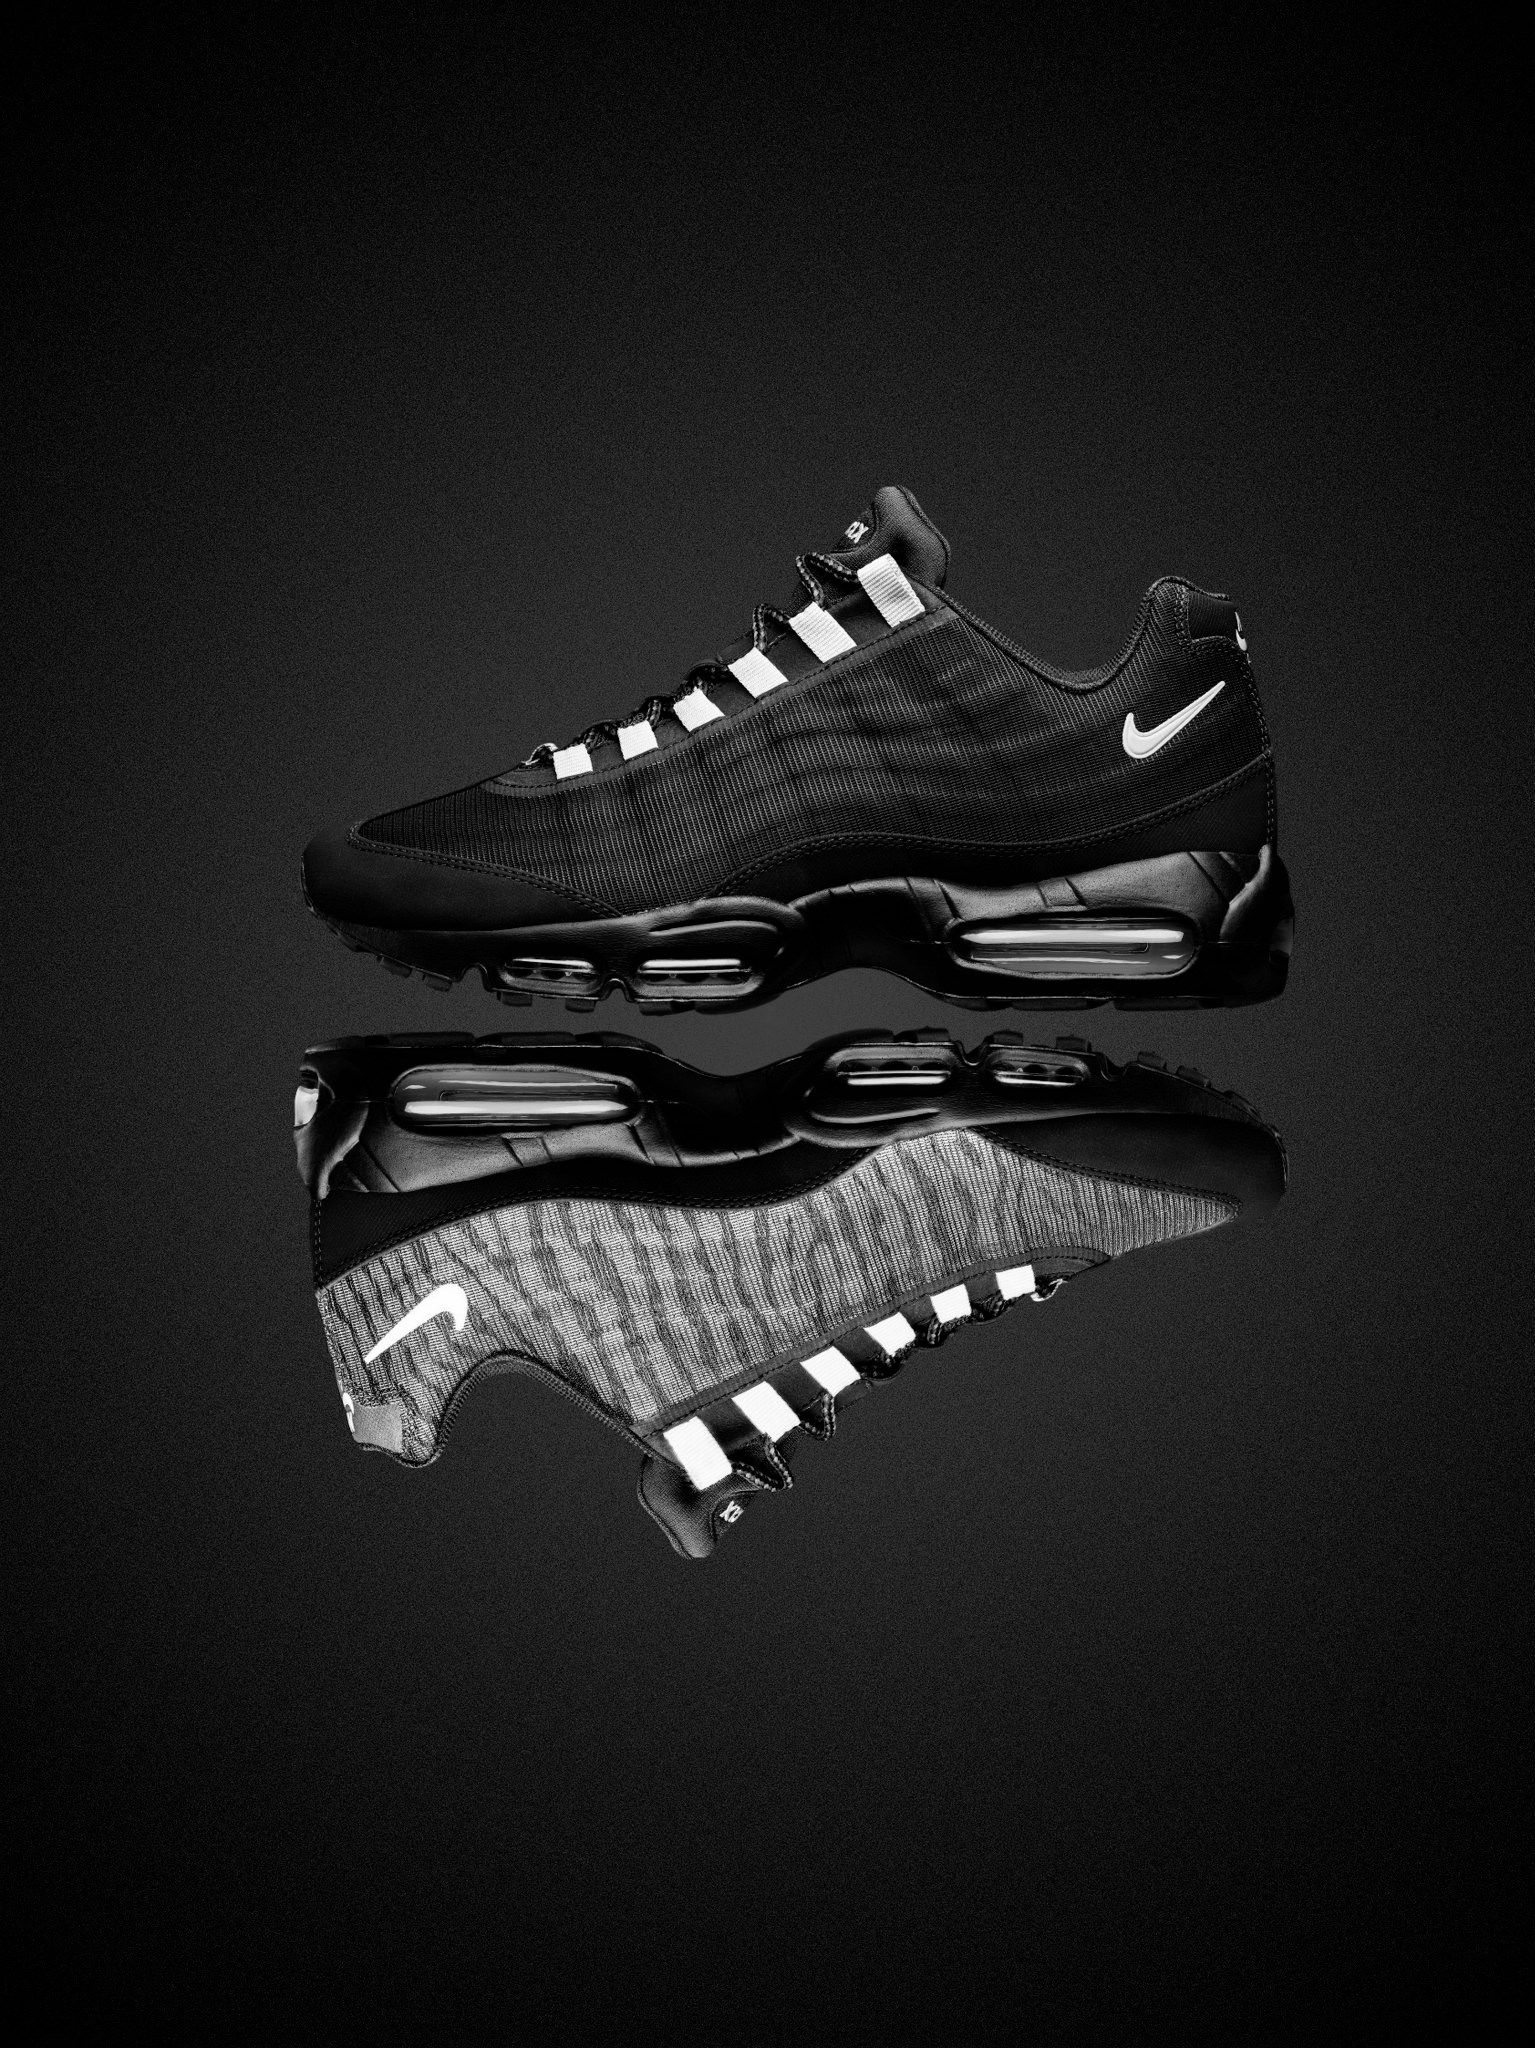 Nike Air Max 95 Premium Tape Reflective Pack With Images